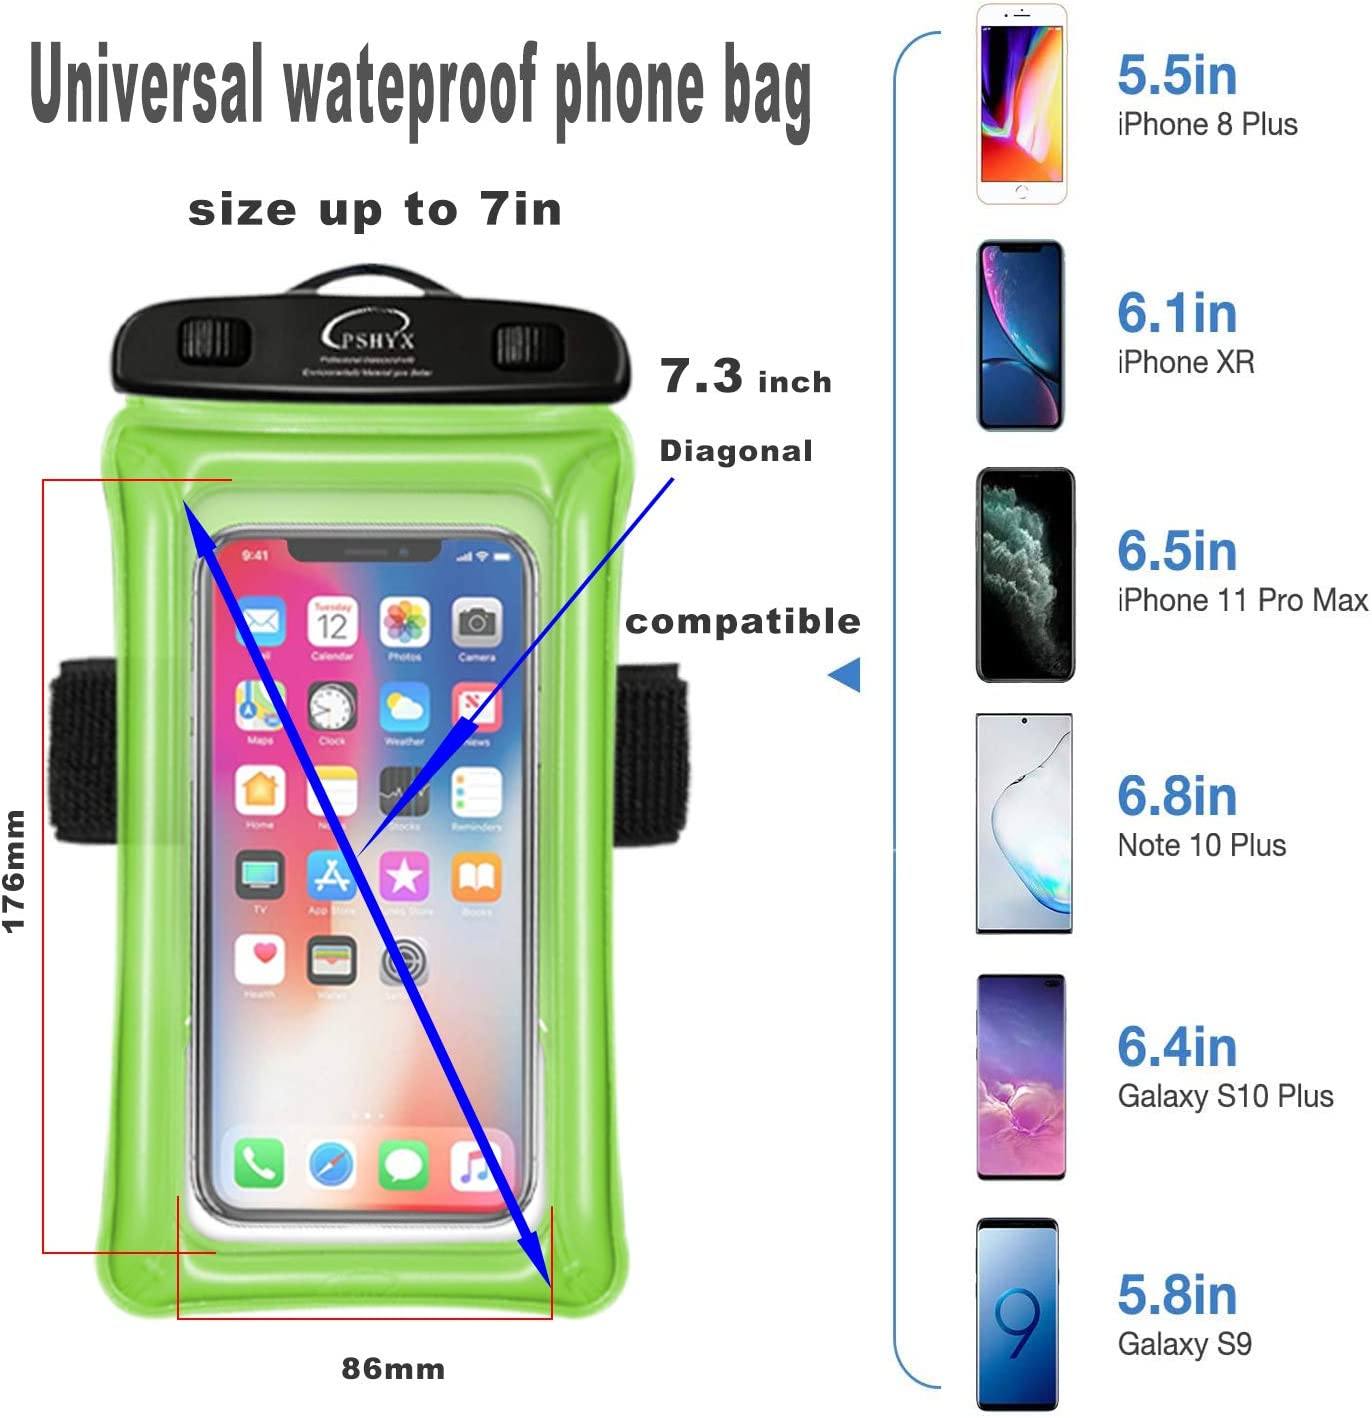 PSHYX Universal 100 Feet Waterproof Phone Bag Floating Case with Arm Band for iPhone 11 12 Pro Max XS XR X 8 7 6S Plus Samsung Google LG Phone up to 7 Inch (Pack of 2) (Black+White)